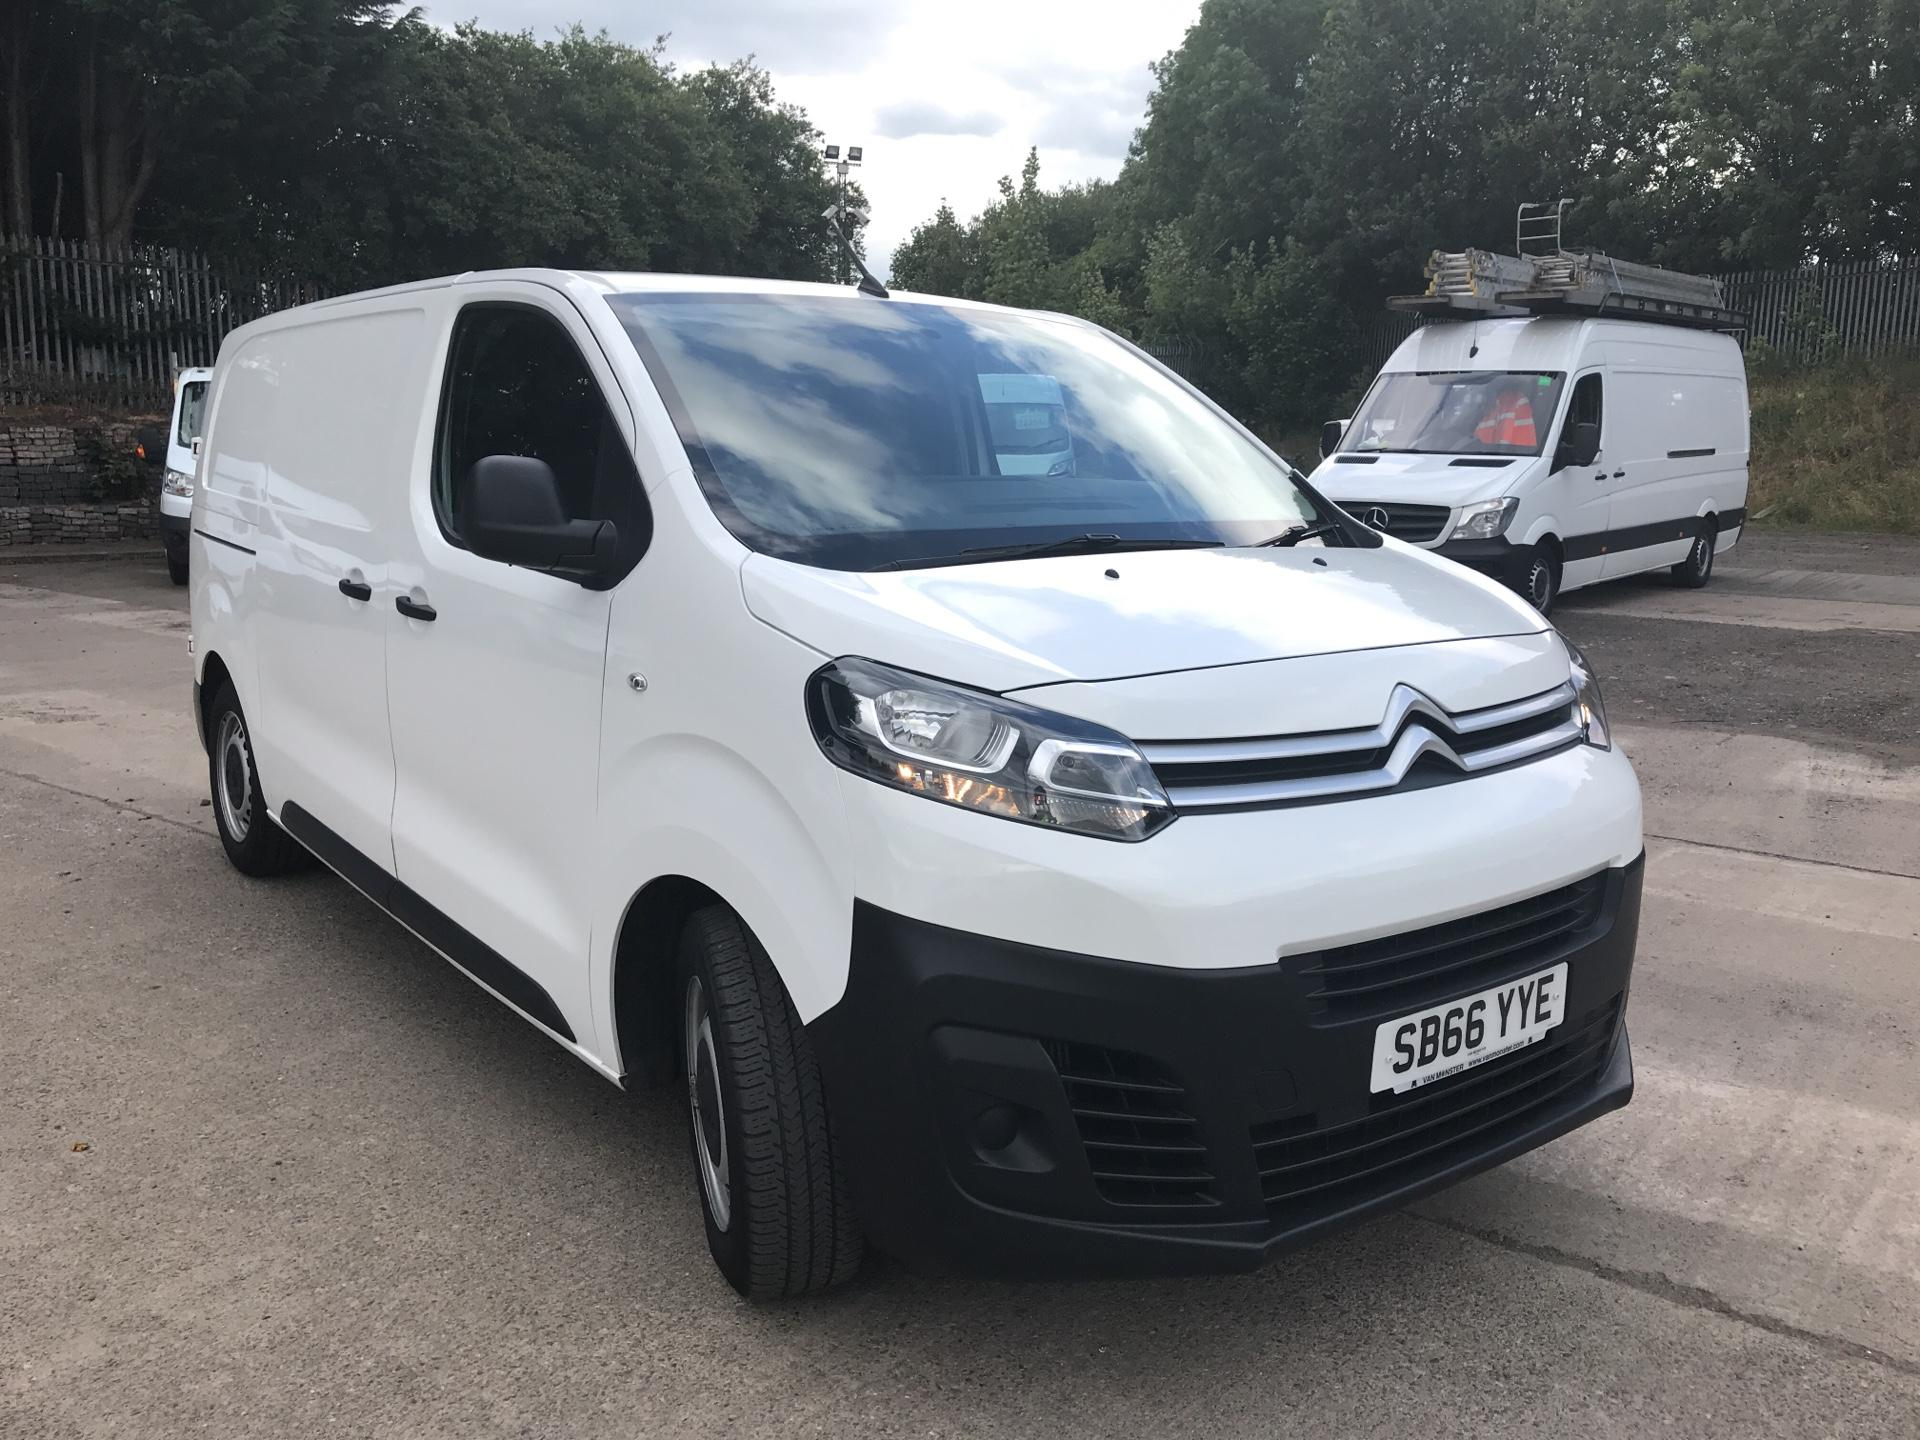 2017 Citroen Dispatch DIESEL 1000 1.6 BLUEHDI 115PS ENTERPRISE EURO 6 (SB66YYE)